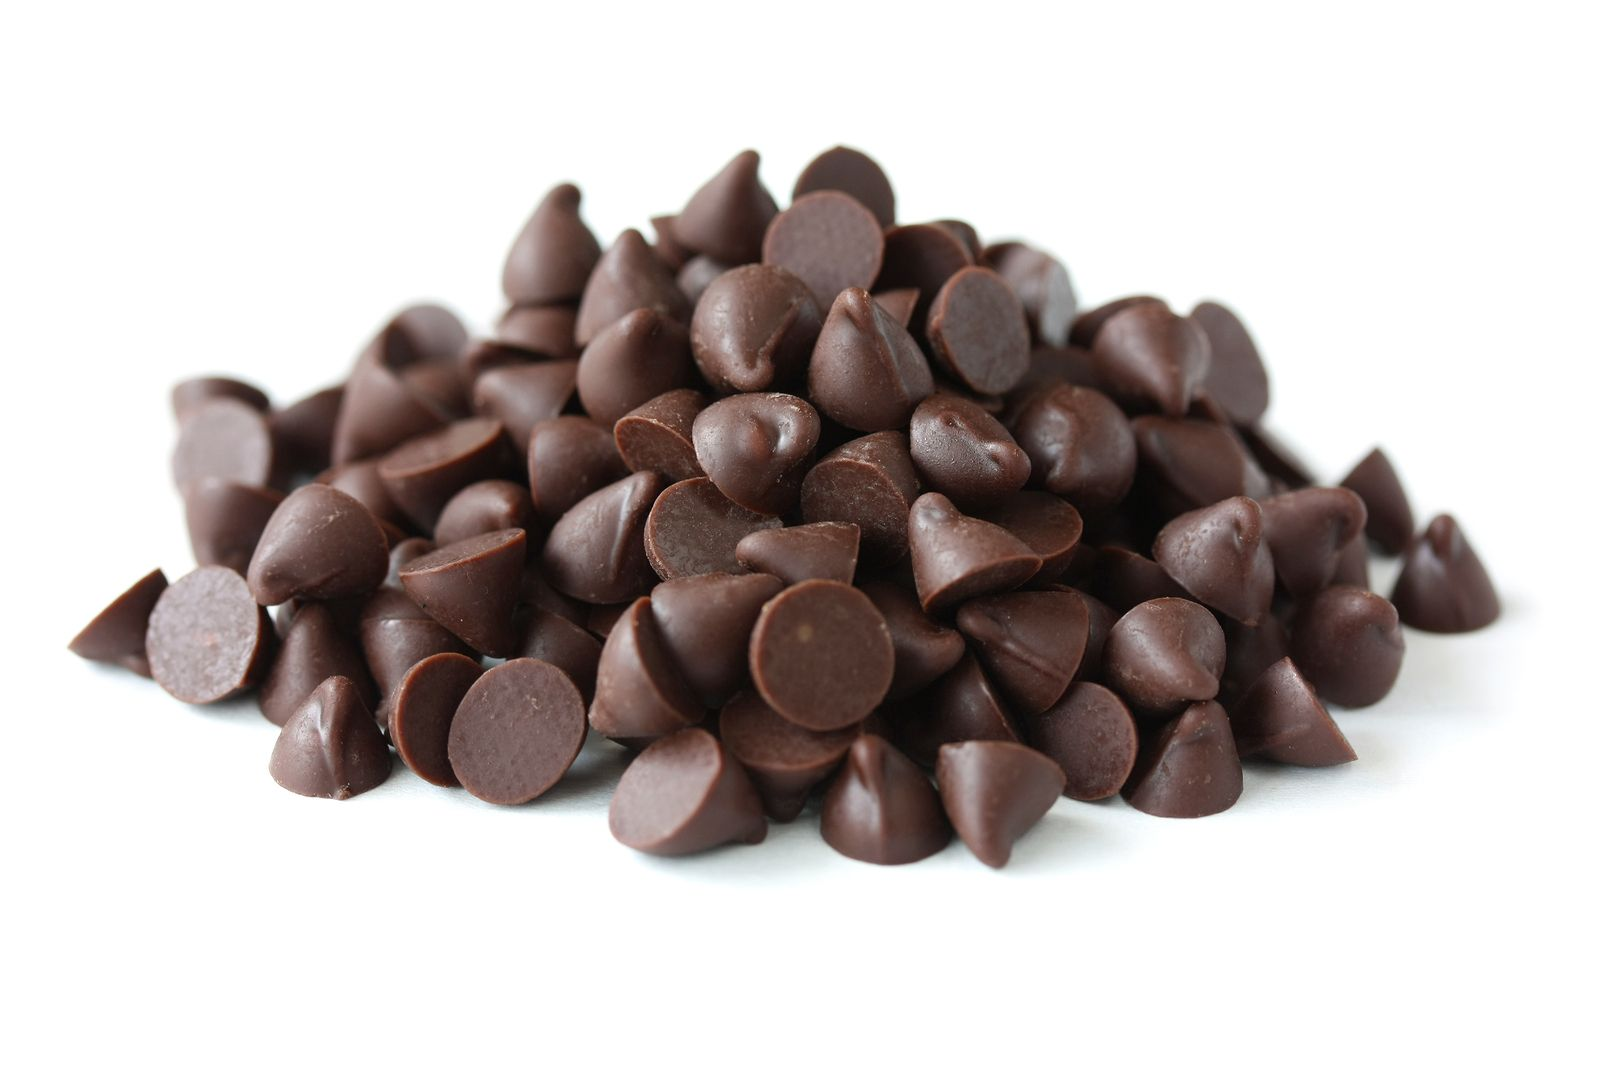 One chocolate chip can give you enough energy to walk 150 feet ...